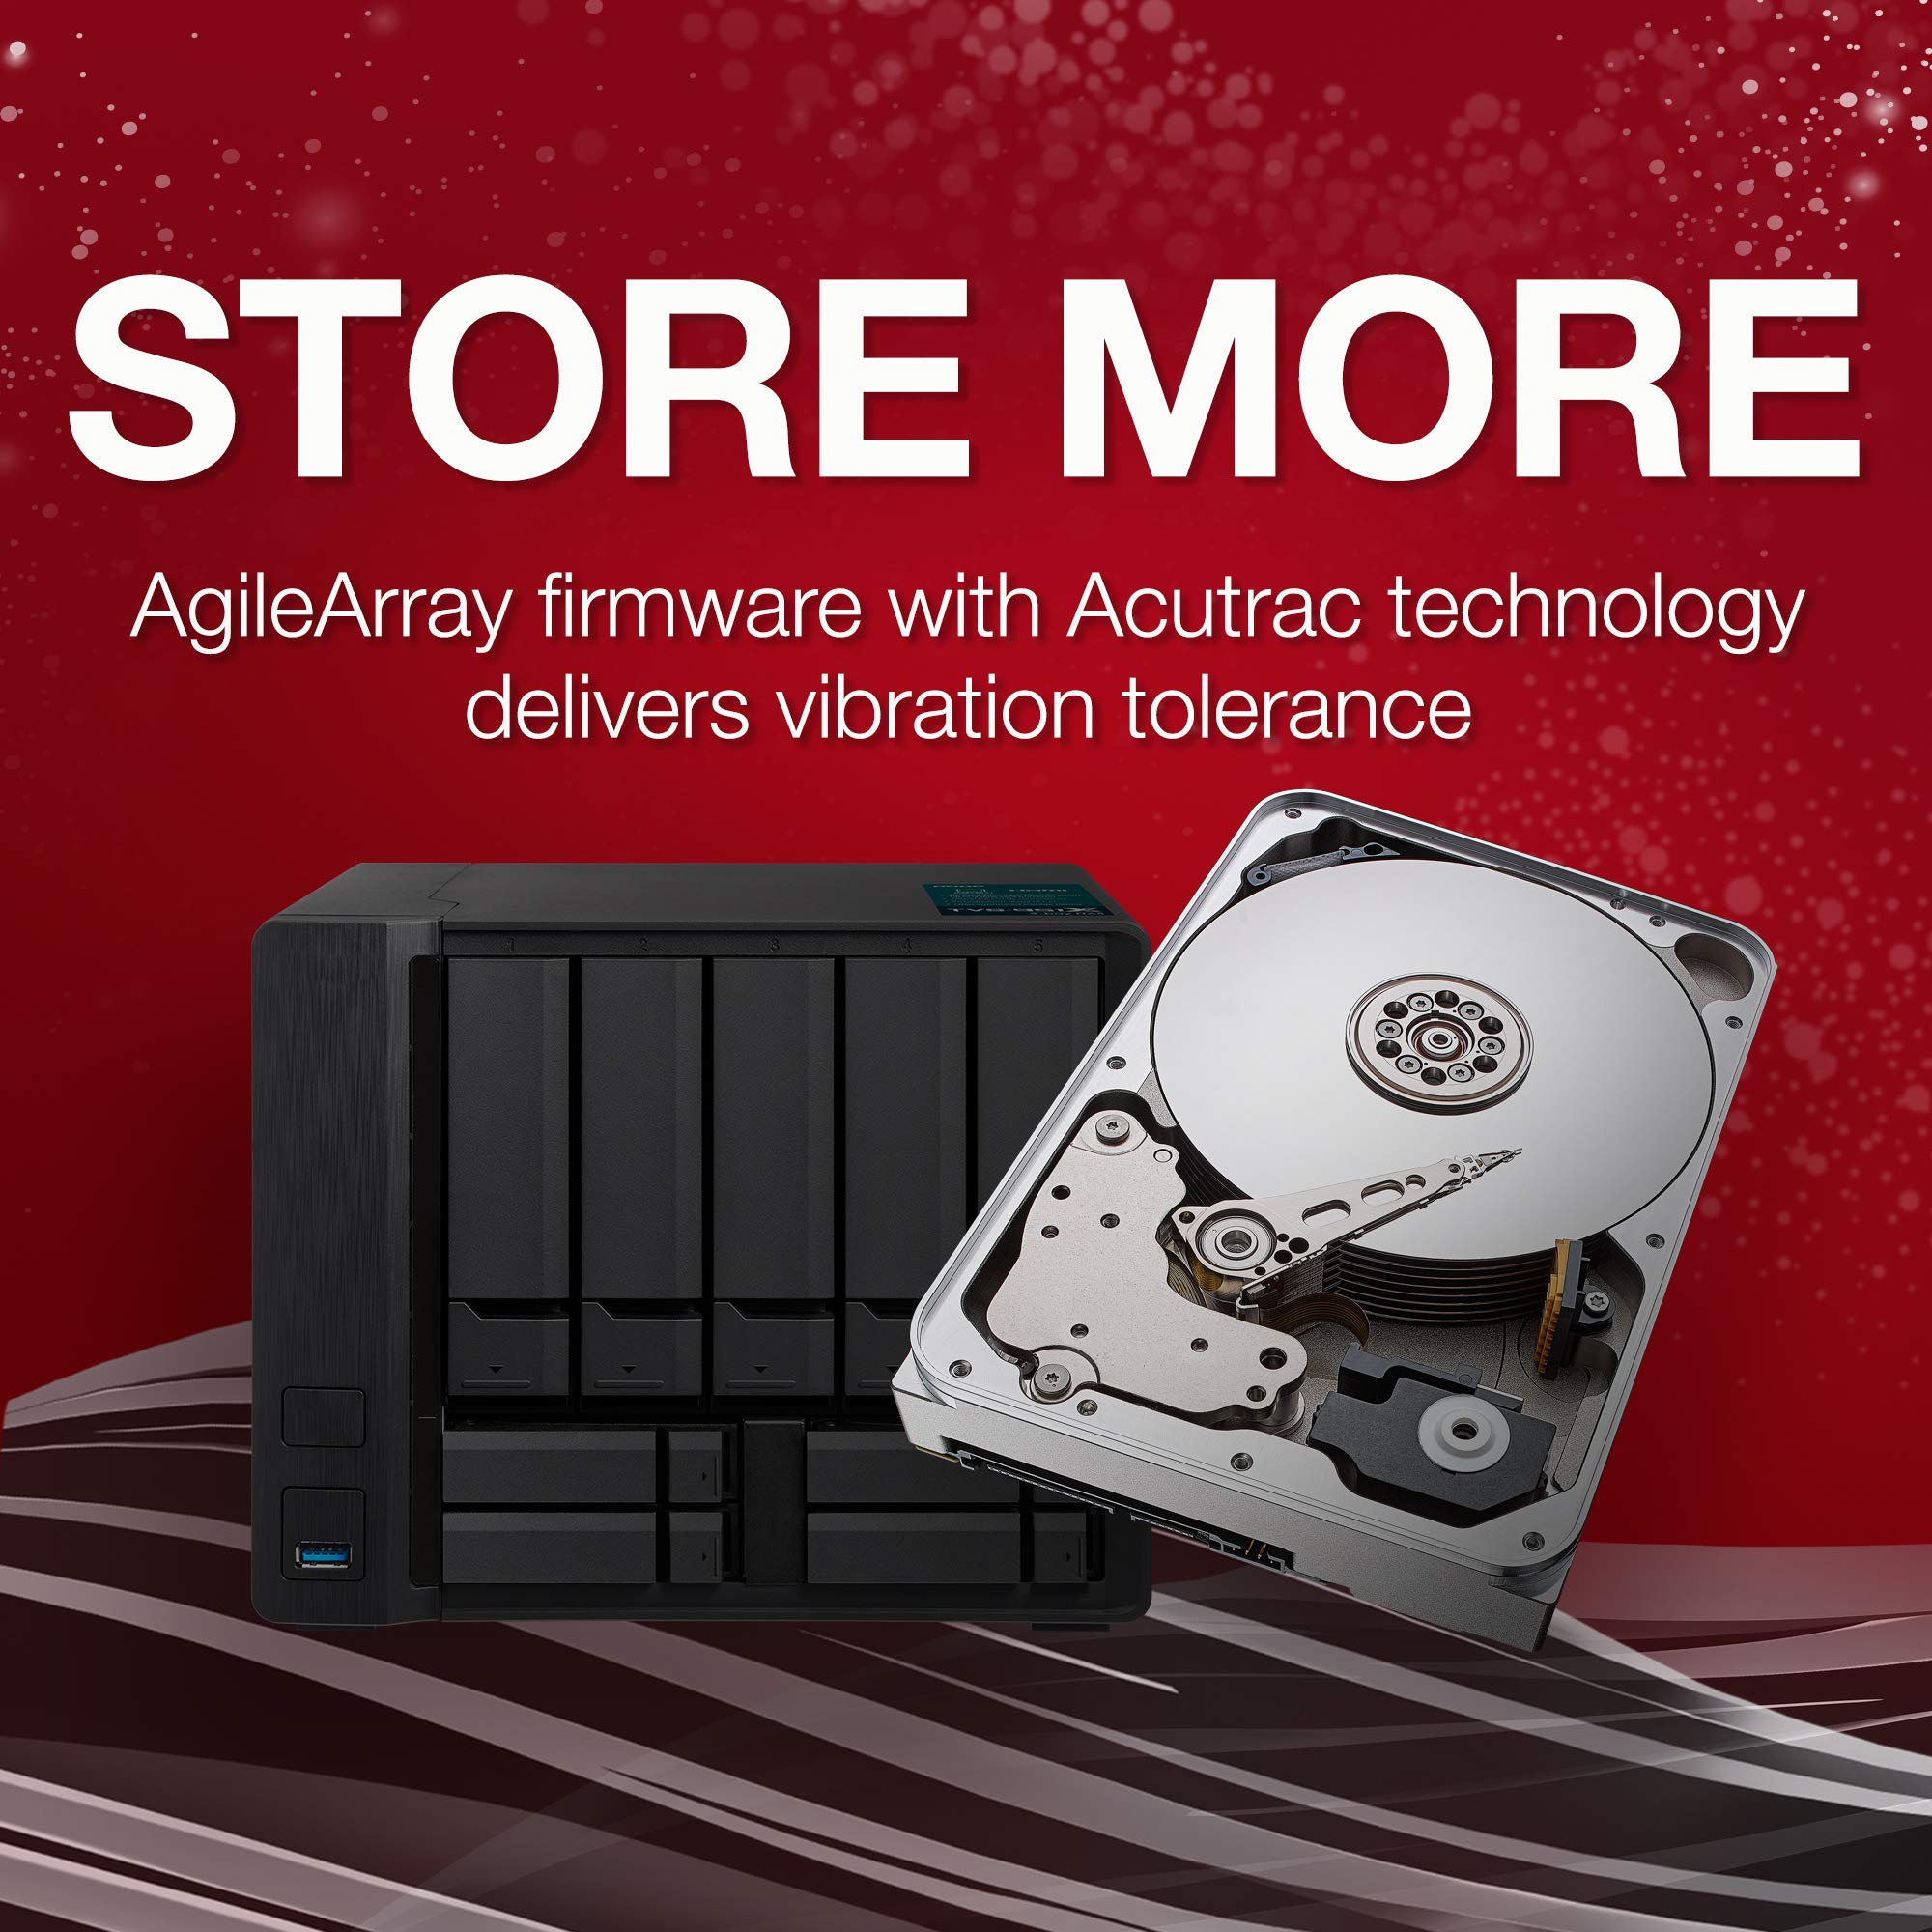 Seagate IronWolf 12TB NAS Internal Hard Drive HDD - 3.5 Inch SATA 6Gb/s 7200 RPM 256MB Cache for RAID Network Attached Storage (ST12000VN0007) by Seagate (Image #4)